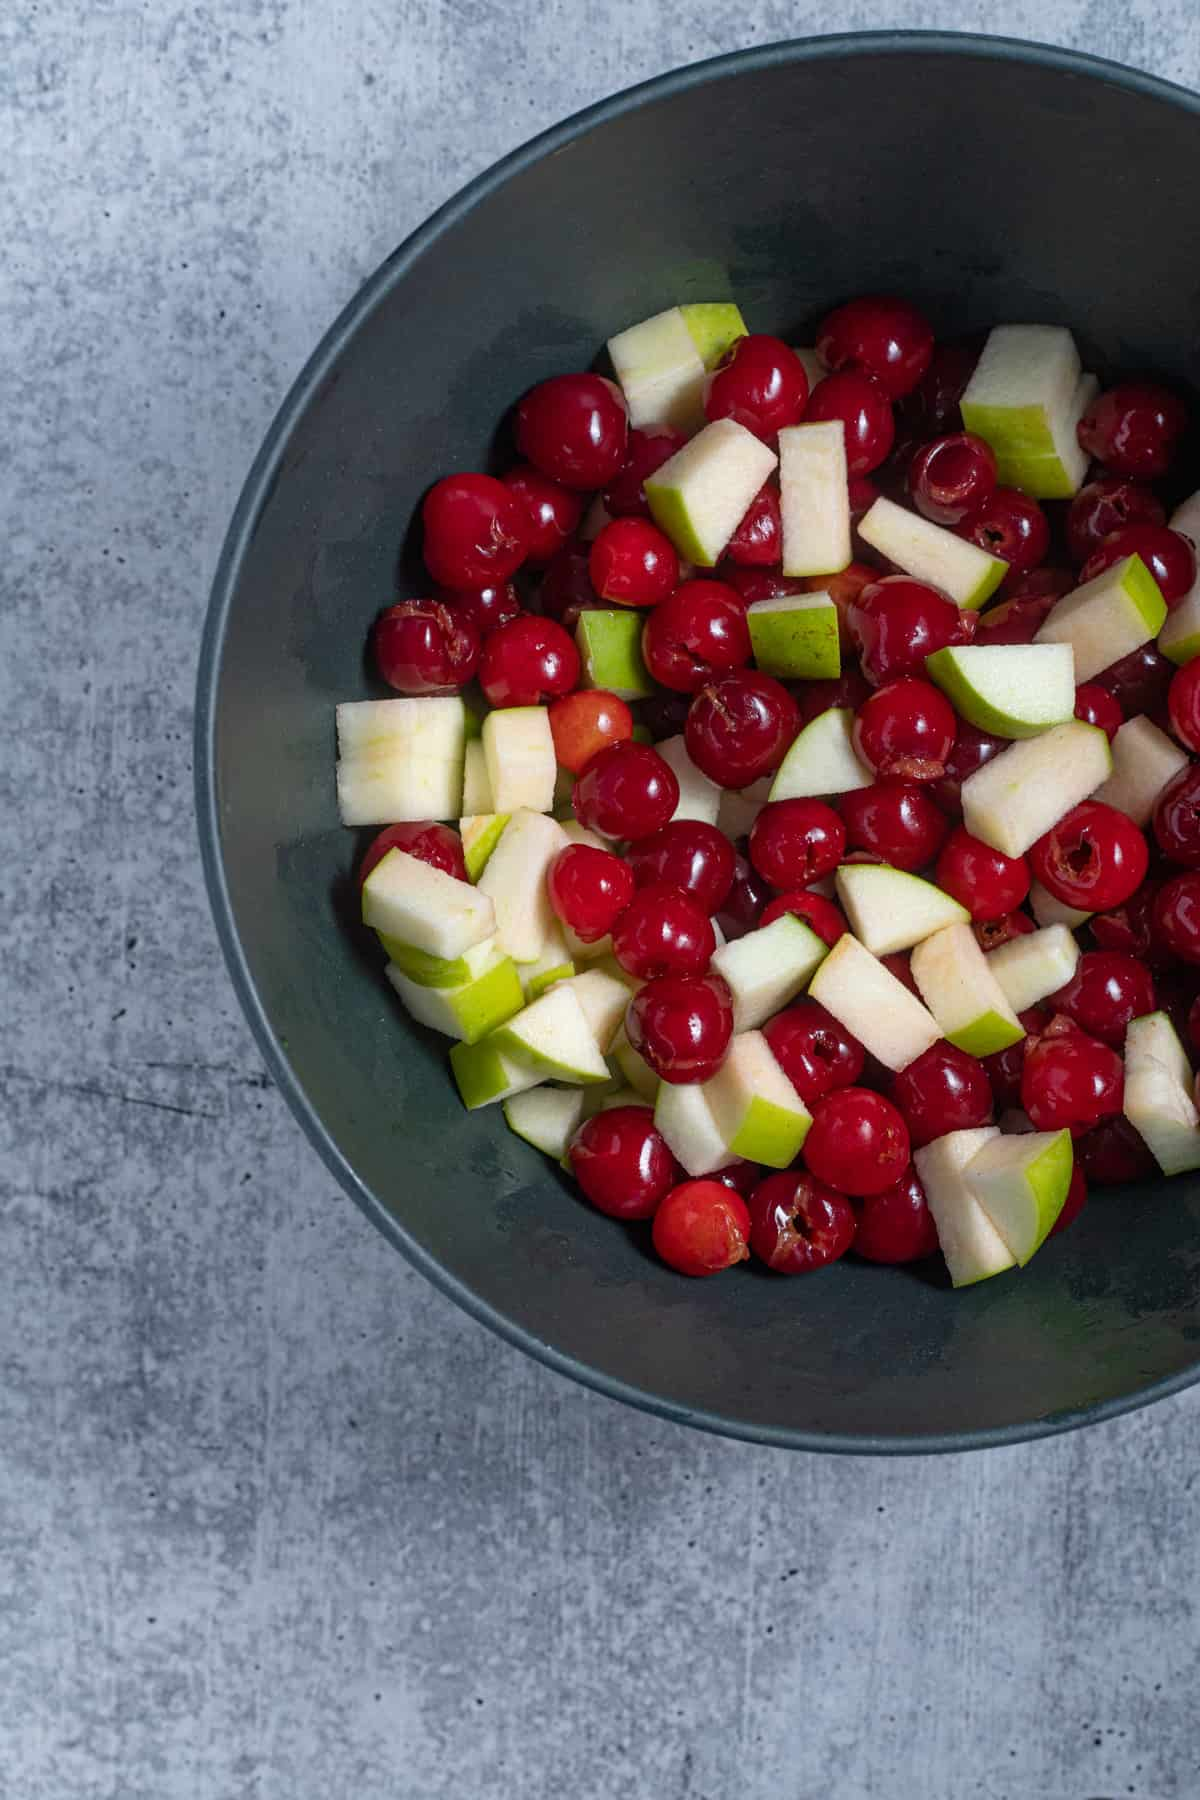 sour cherries and apples in a mixing bowl